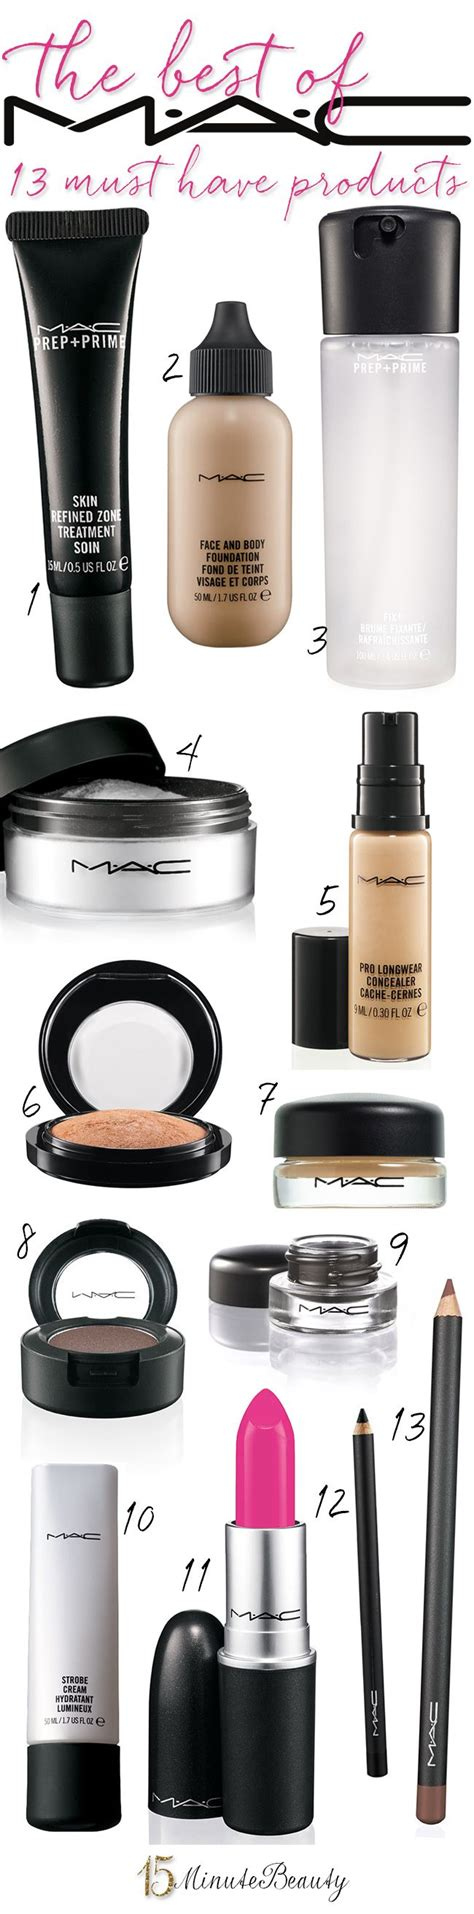 Best Of Mac The Must Products You Absolutely Need by The Best Of Mac The 13 Products You Must